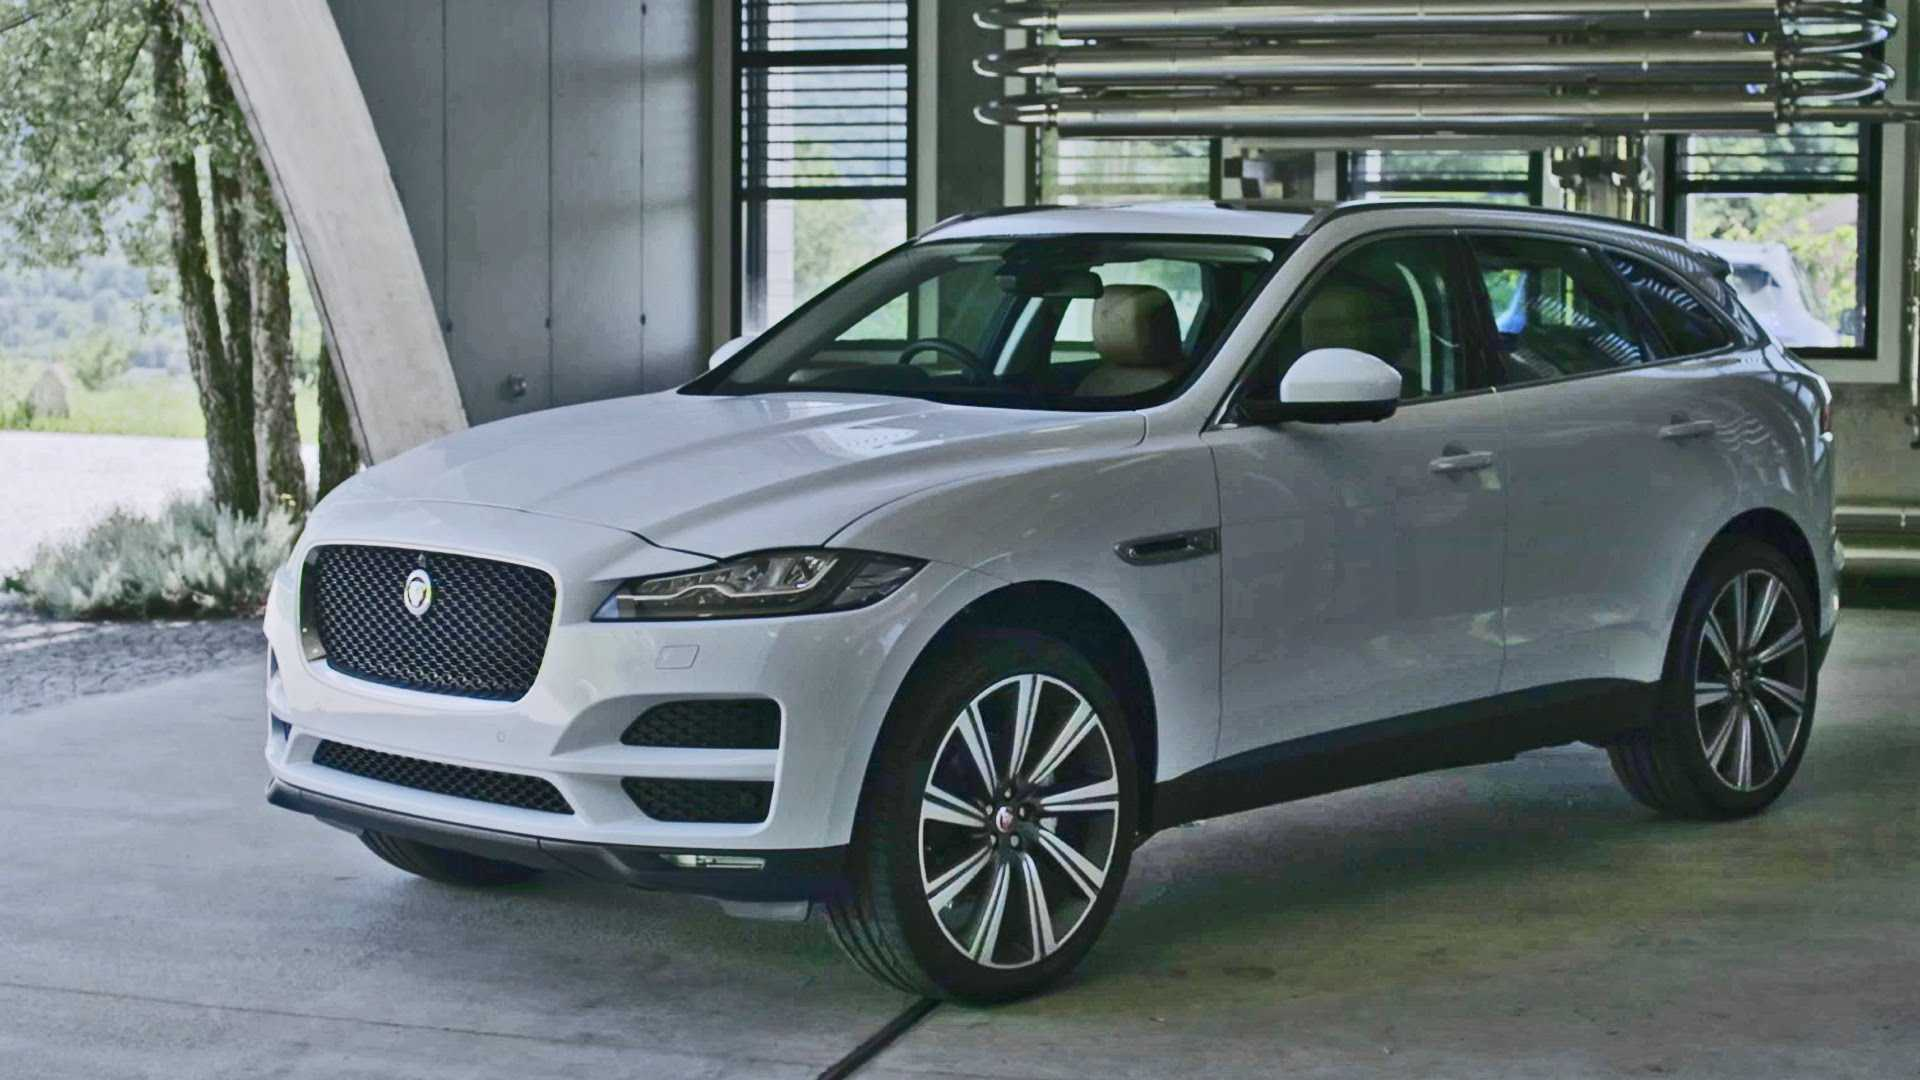 2016 Jaguar F-Pace Arrives Next Month in Three Variants